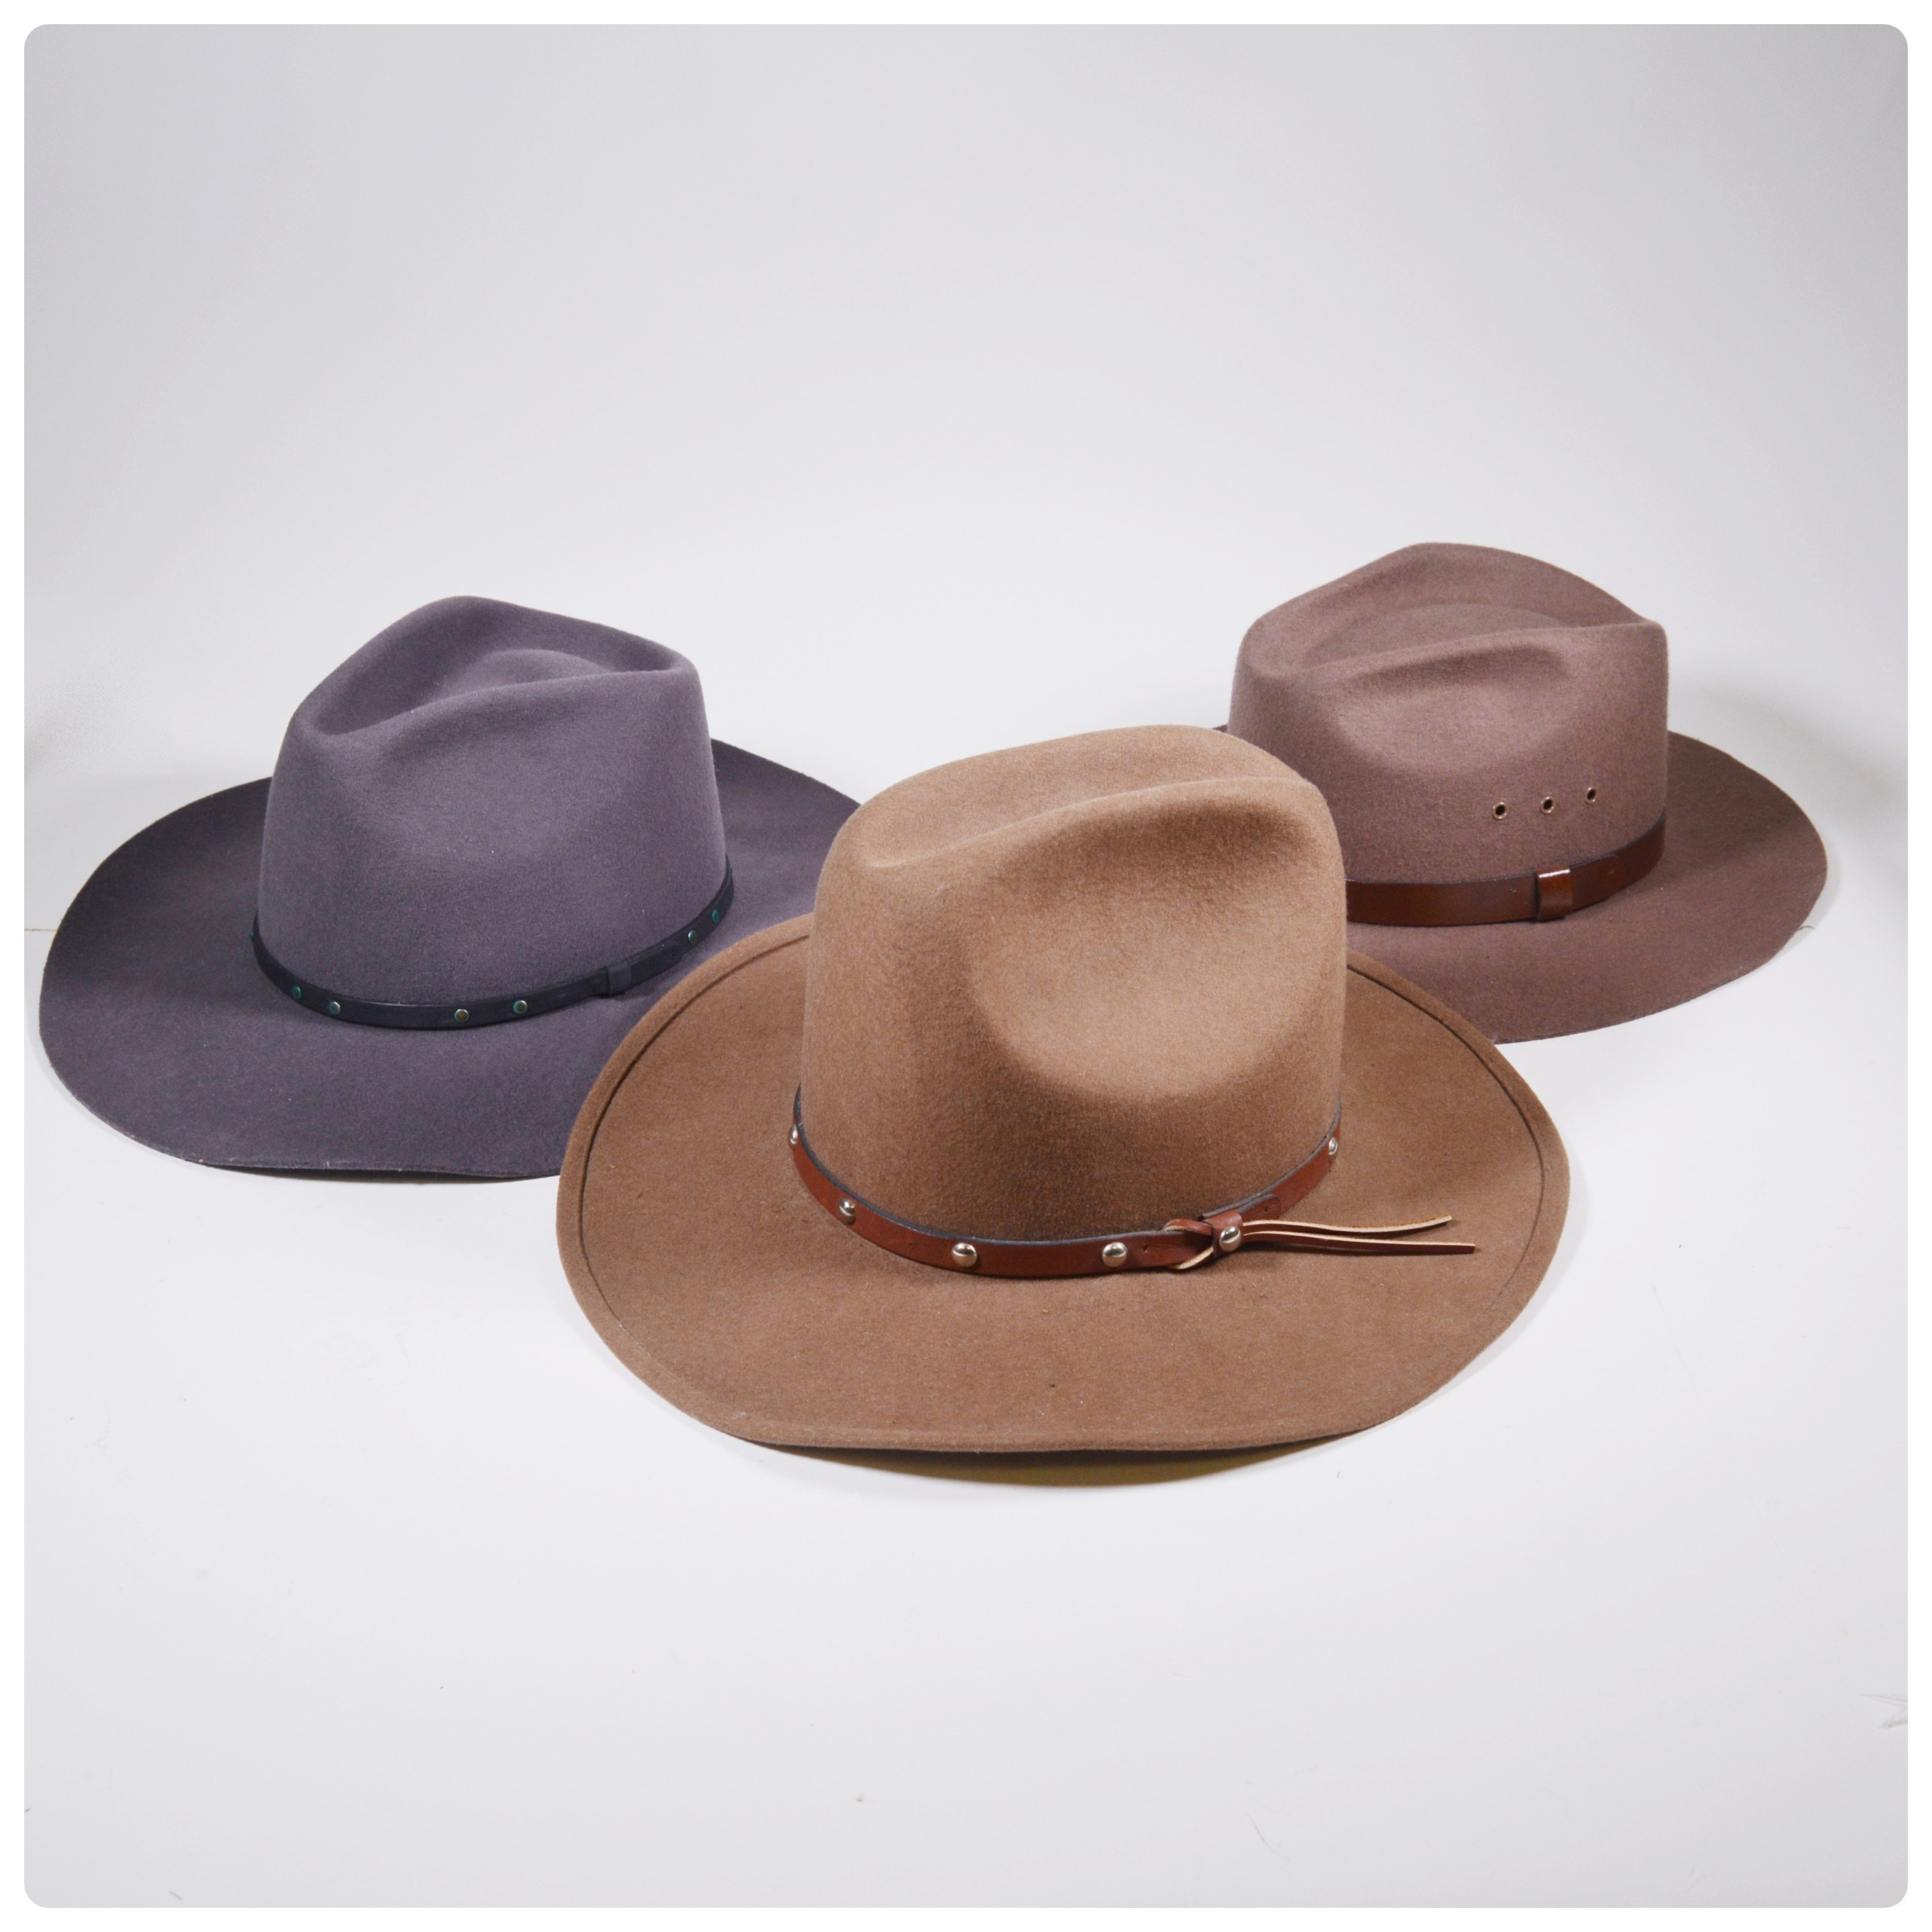 Gentlemen's Wool Felted Hats Including Bailey